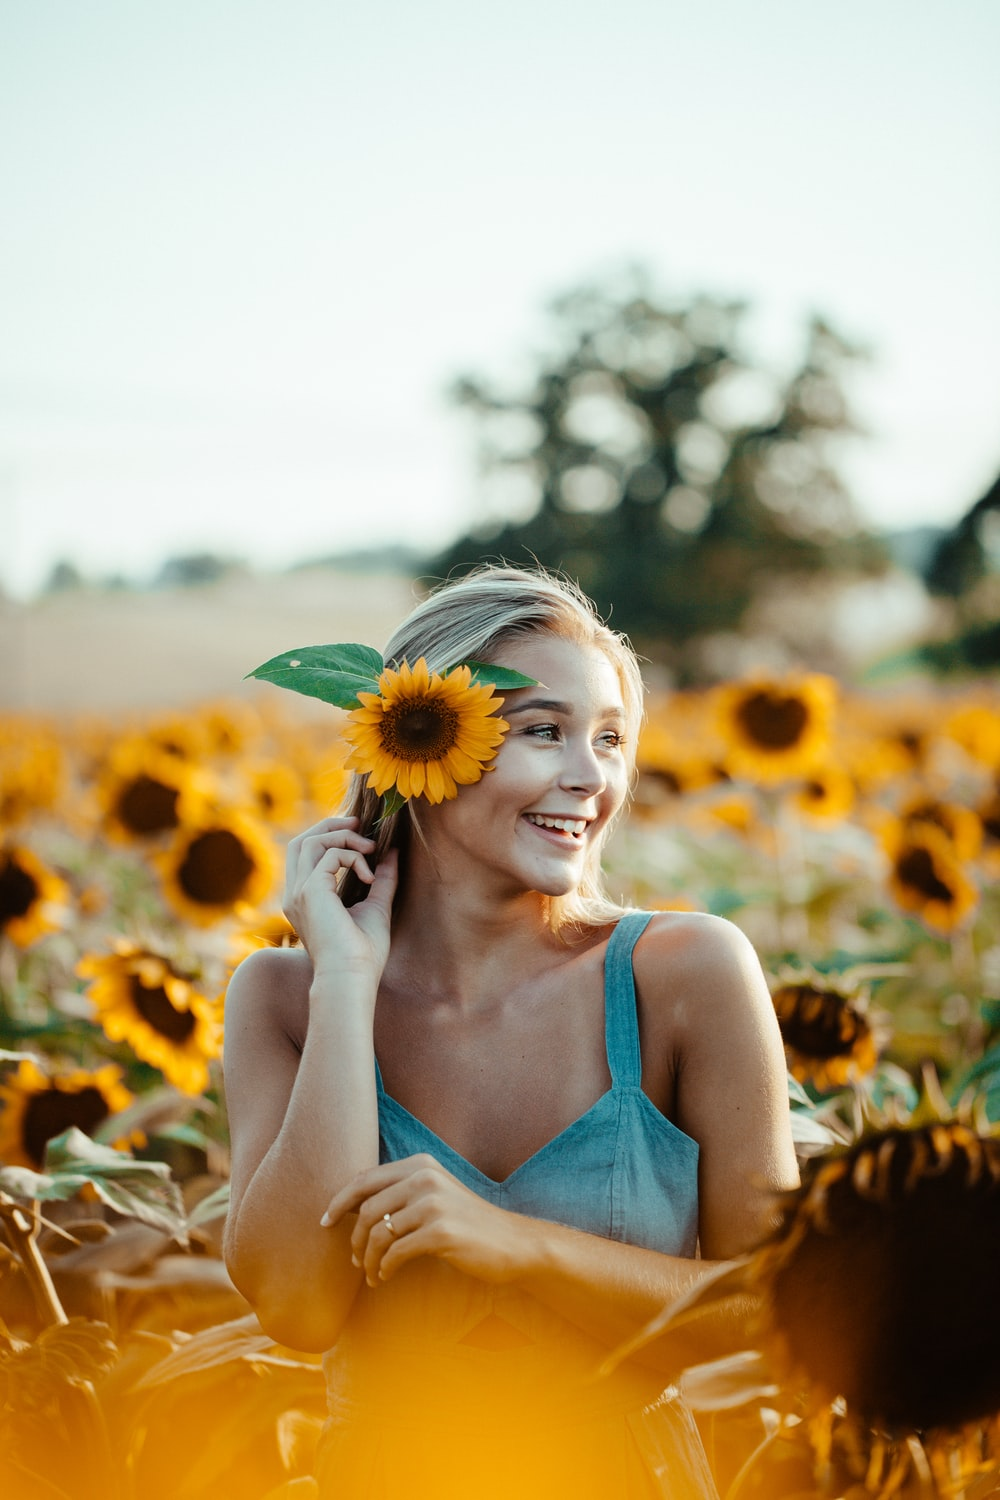 woman in blue sleeveless dress holding sunflower placing in ear